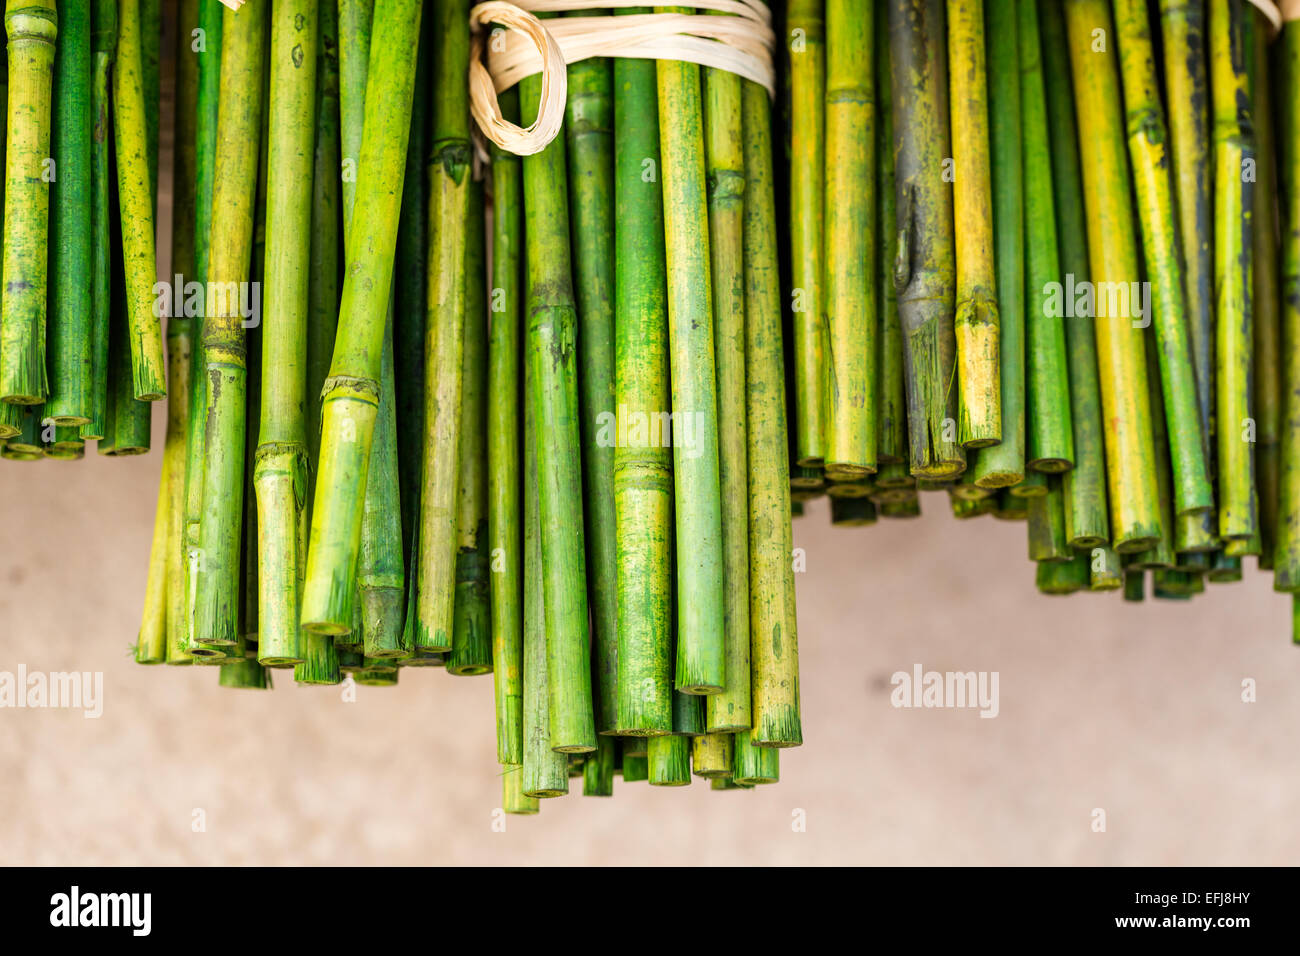 Green bamboo sticks for garden art stock photo royalty